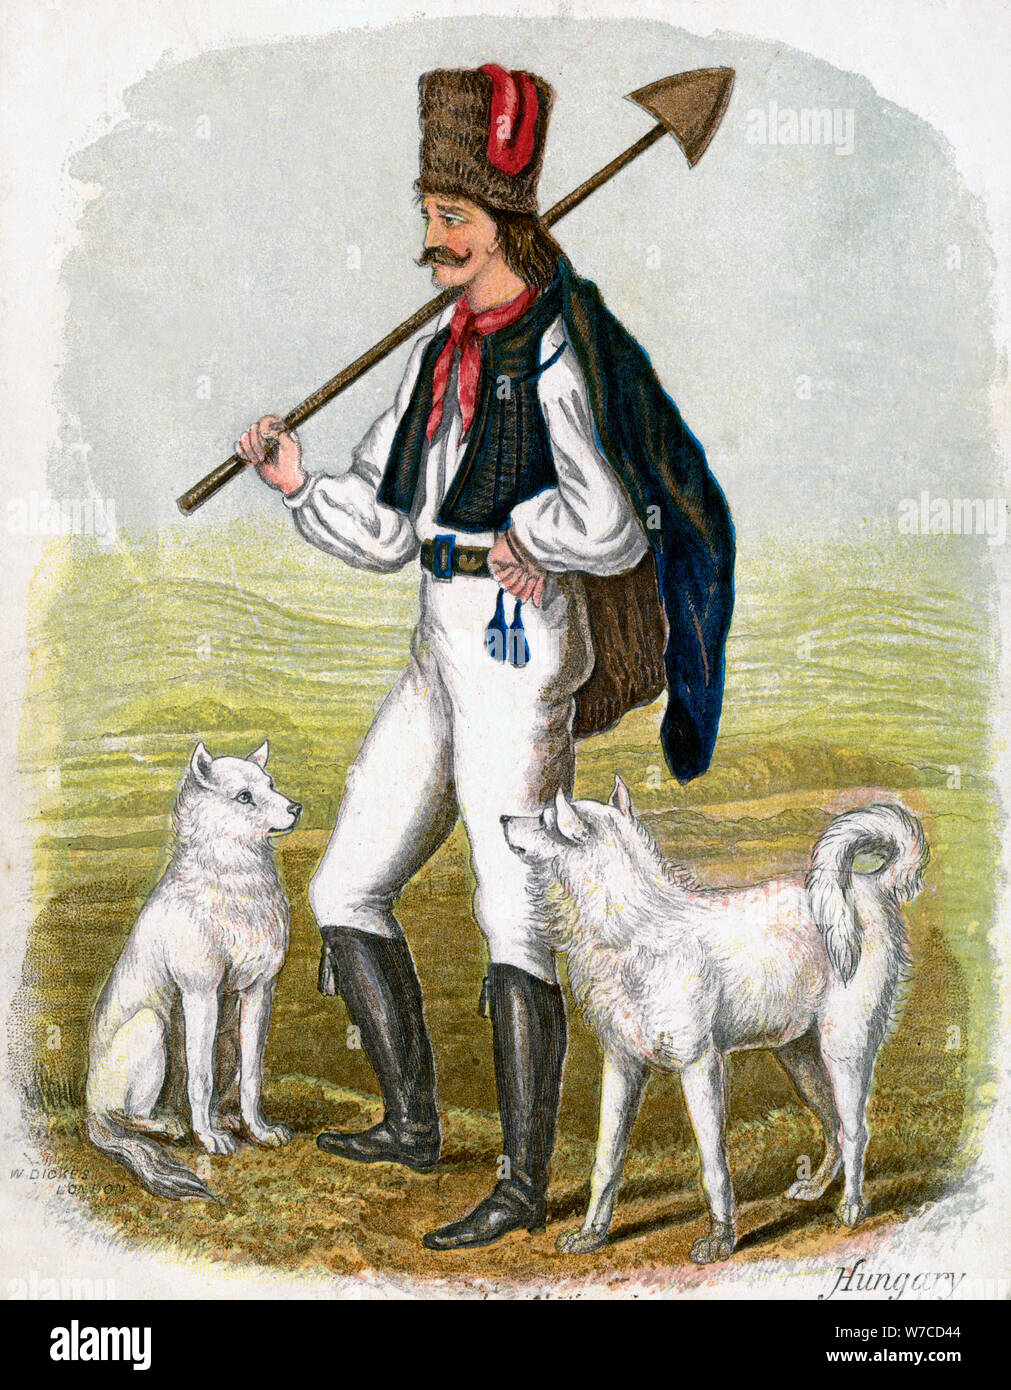 'Hungarian Man with Dogs', 1809.Artist: W Dickes Stock Photo